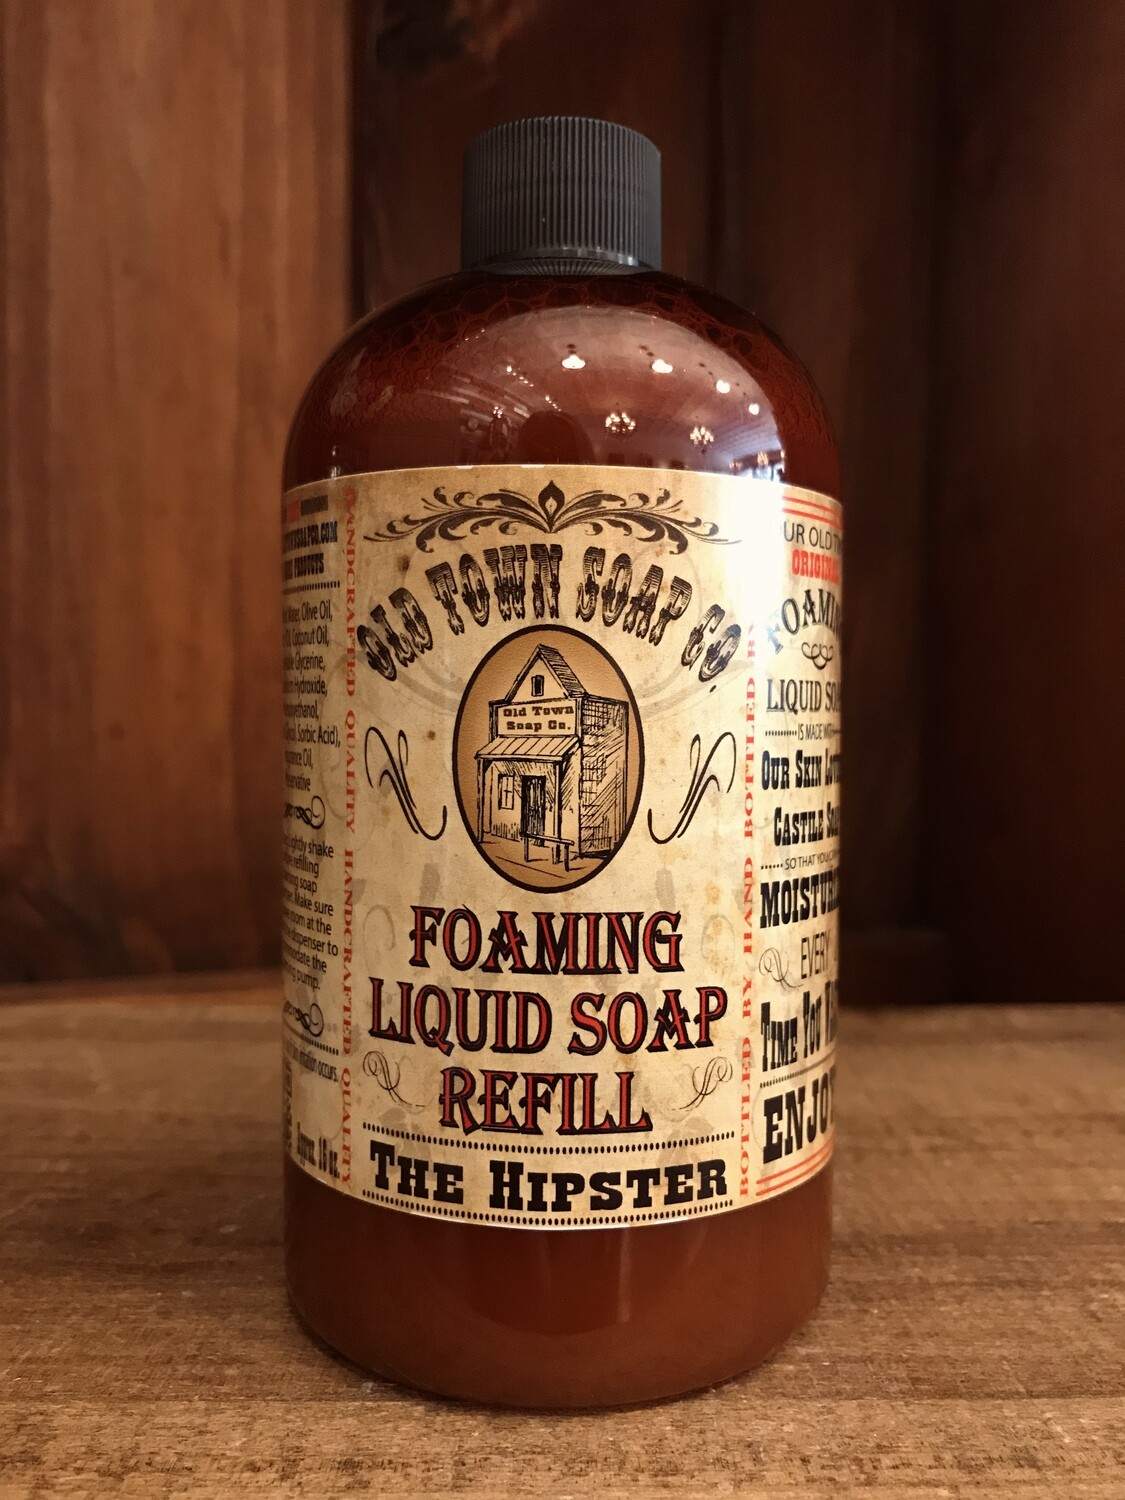 The Hipster -Refill Liquid Soap